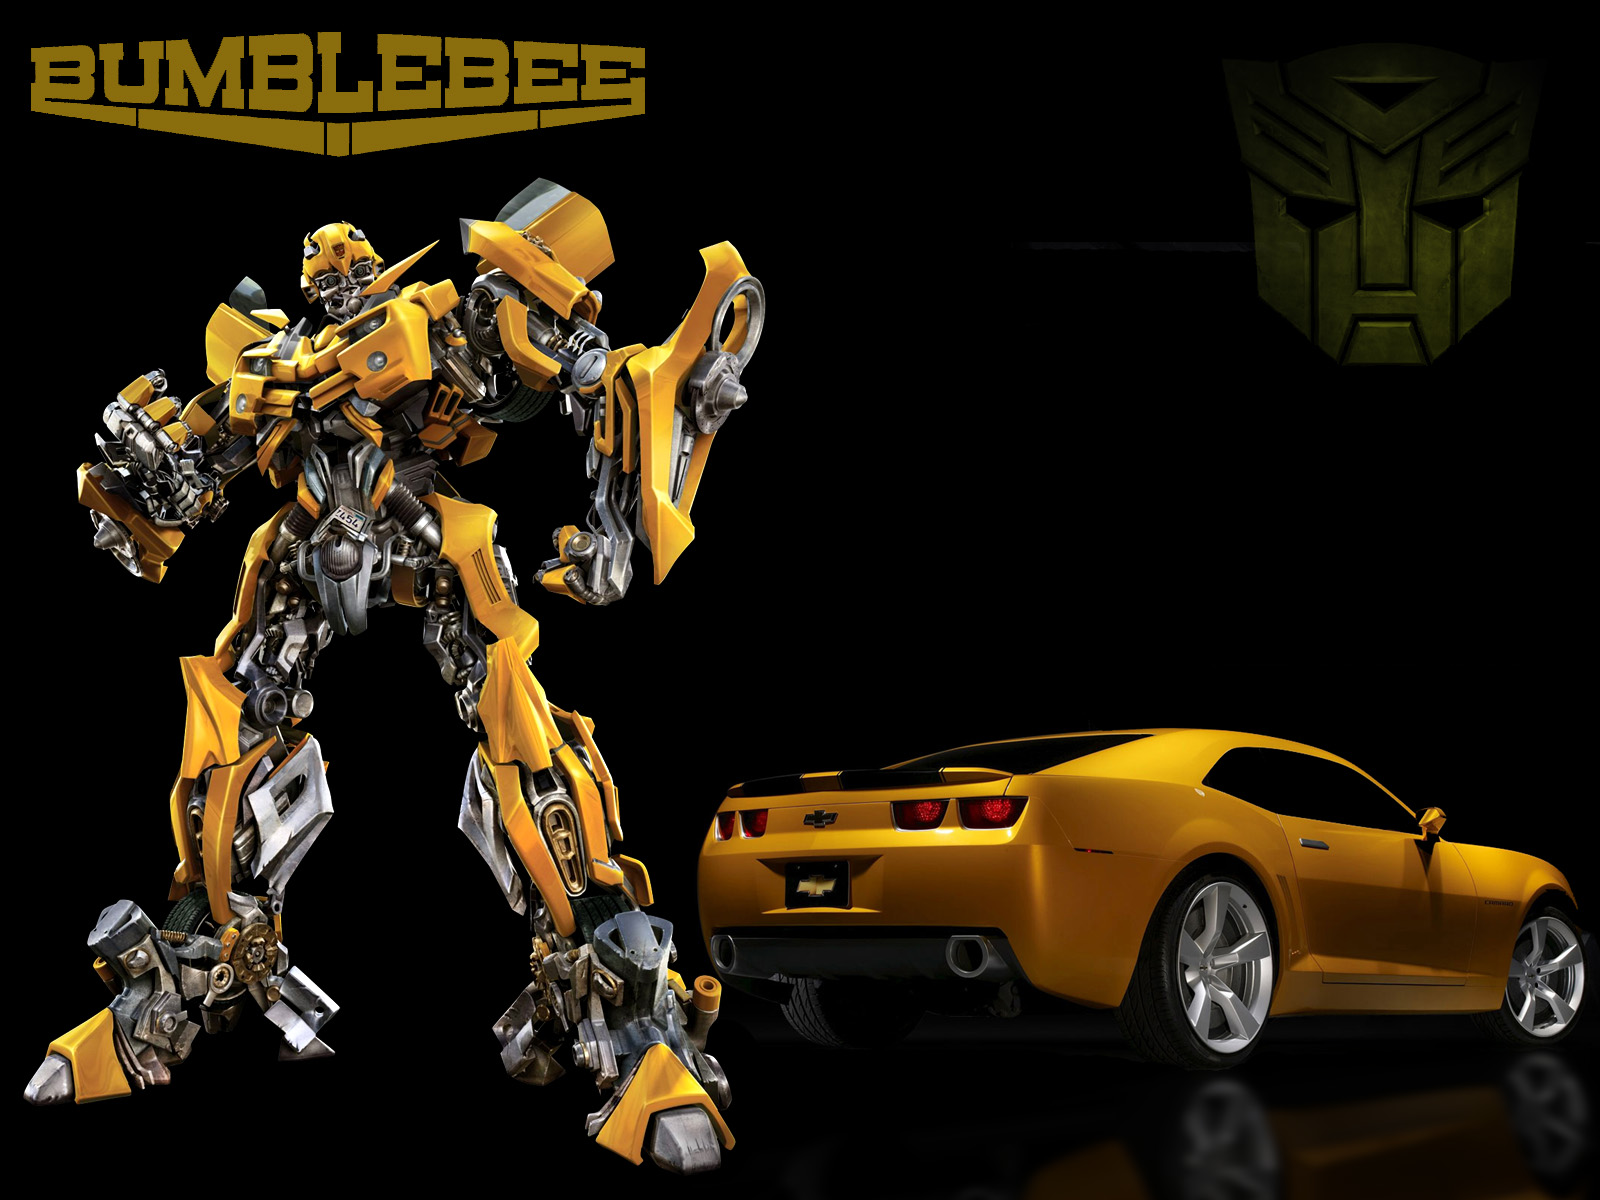 Transformers 4 Bumblebee WallpapersWide  - bumblebee in new transformers wallpapers